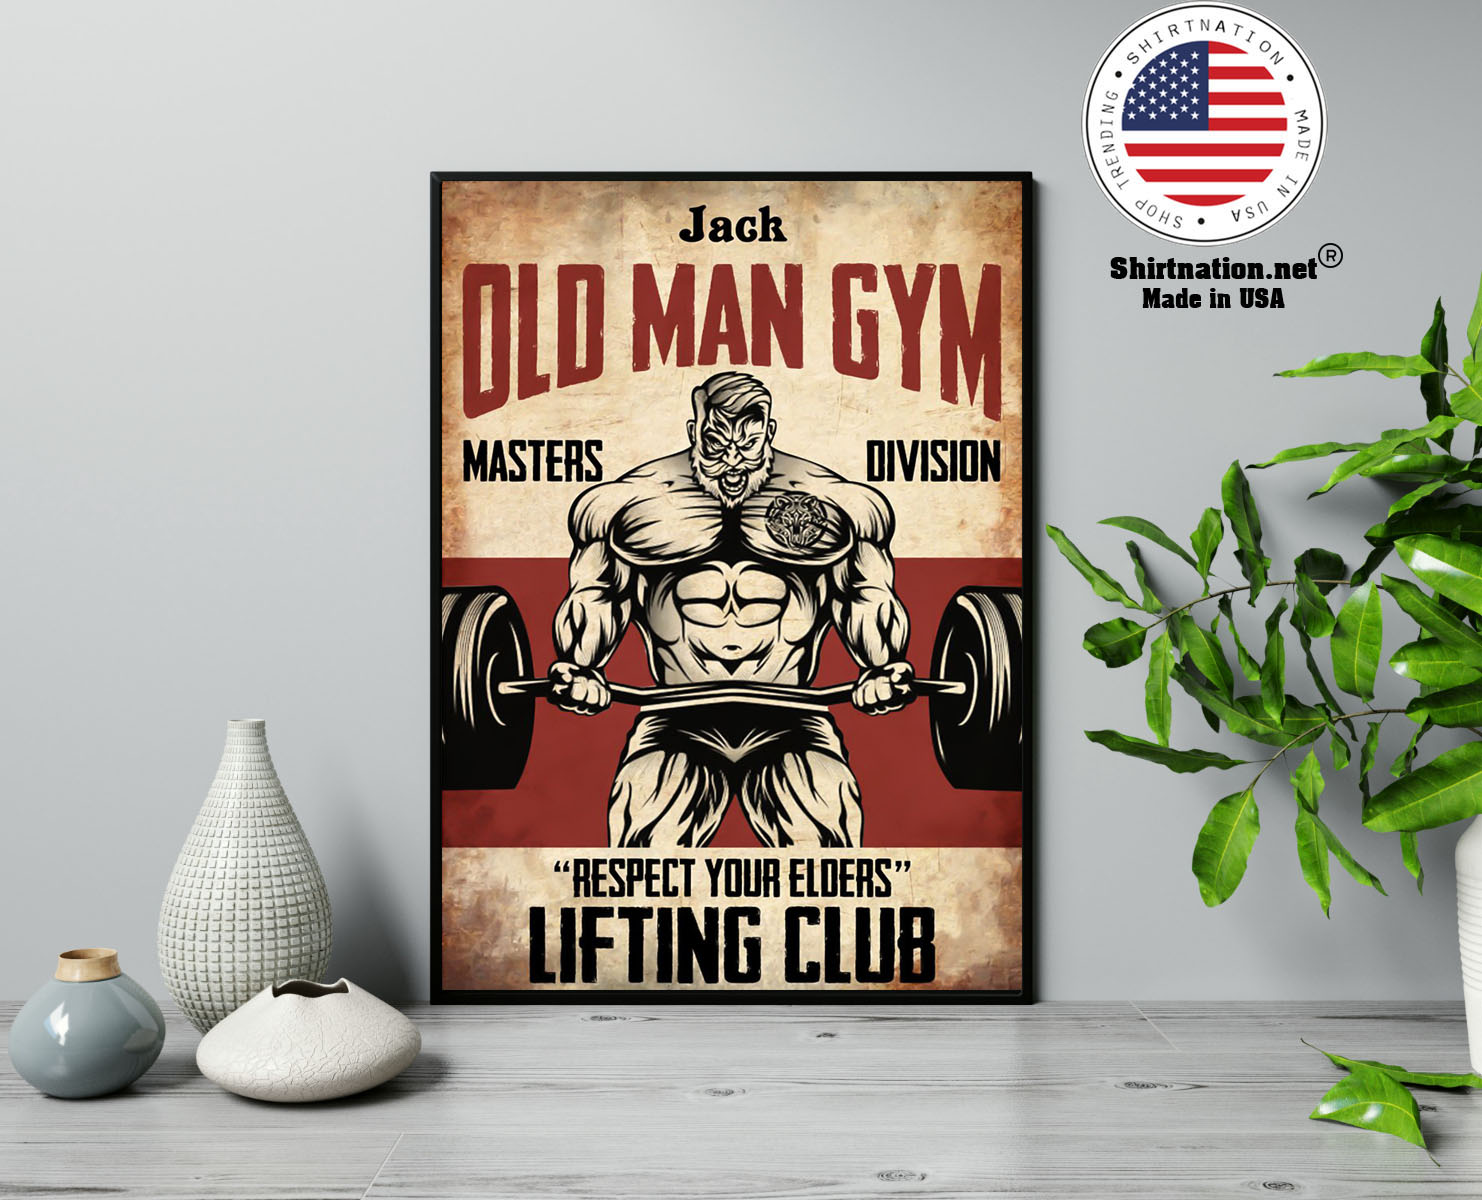 Old man gym masters division respect your elders lifting club poster 13 1